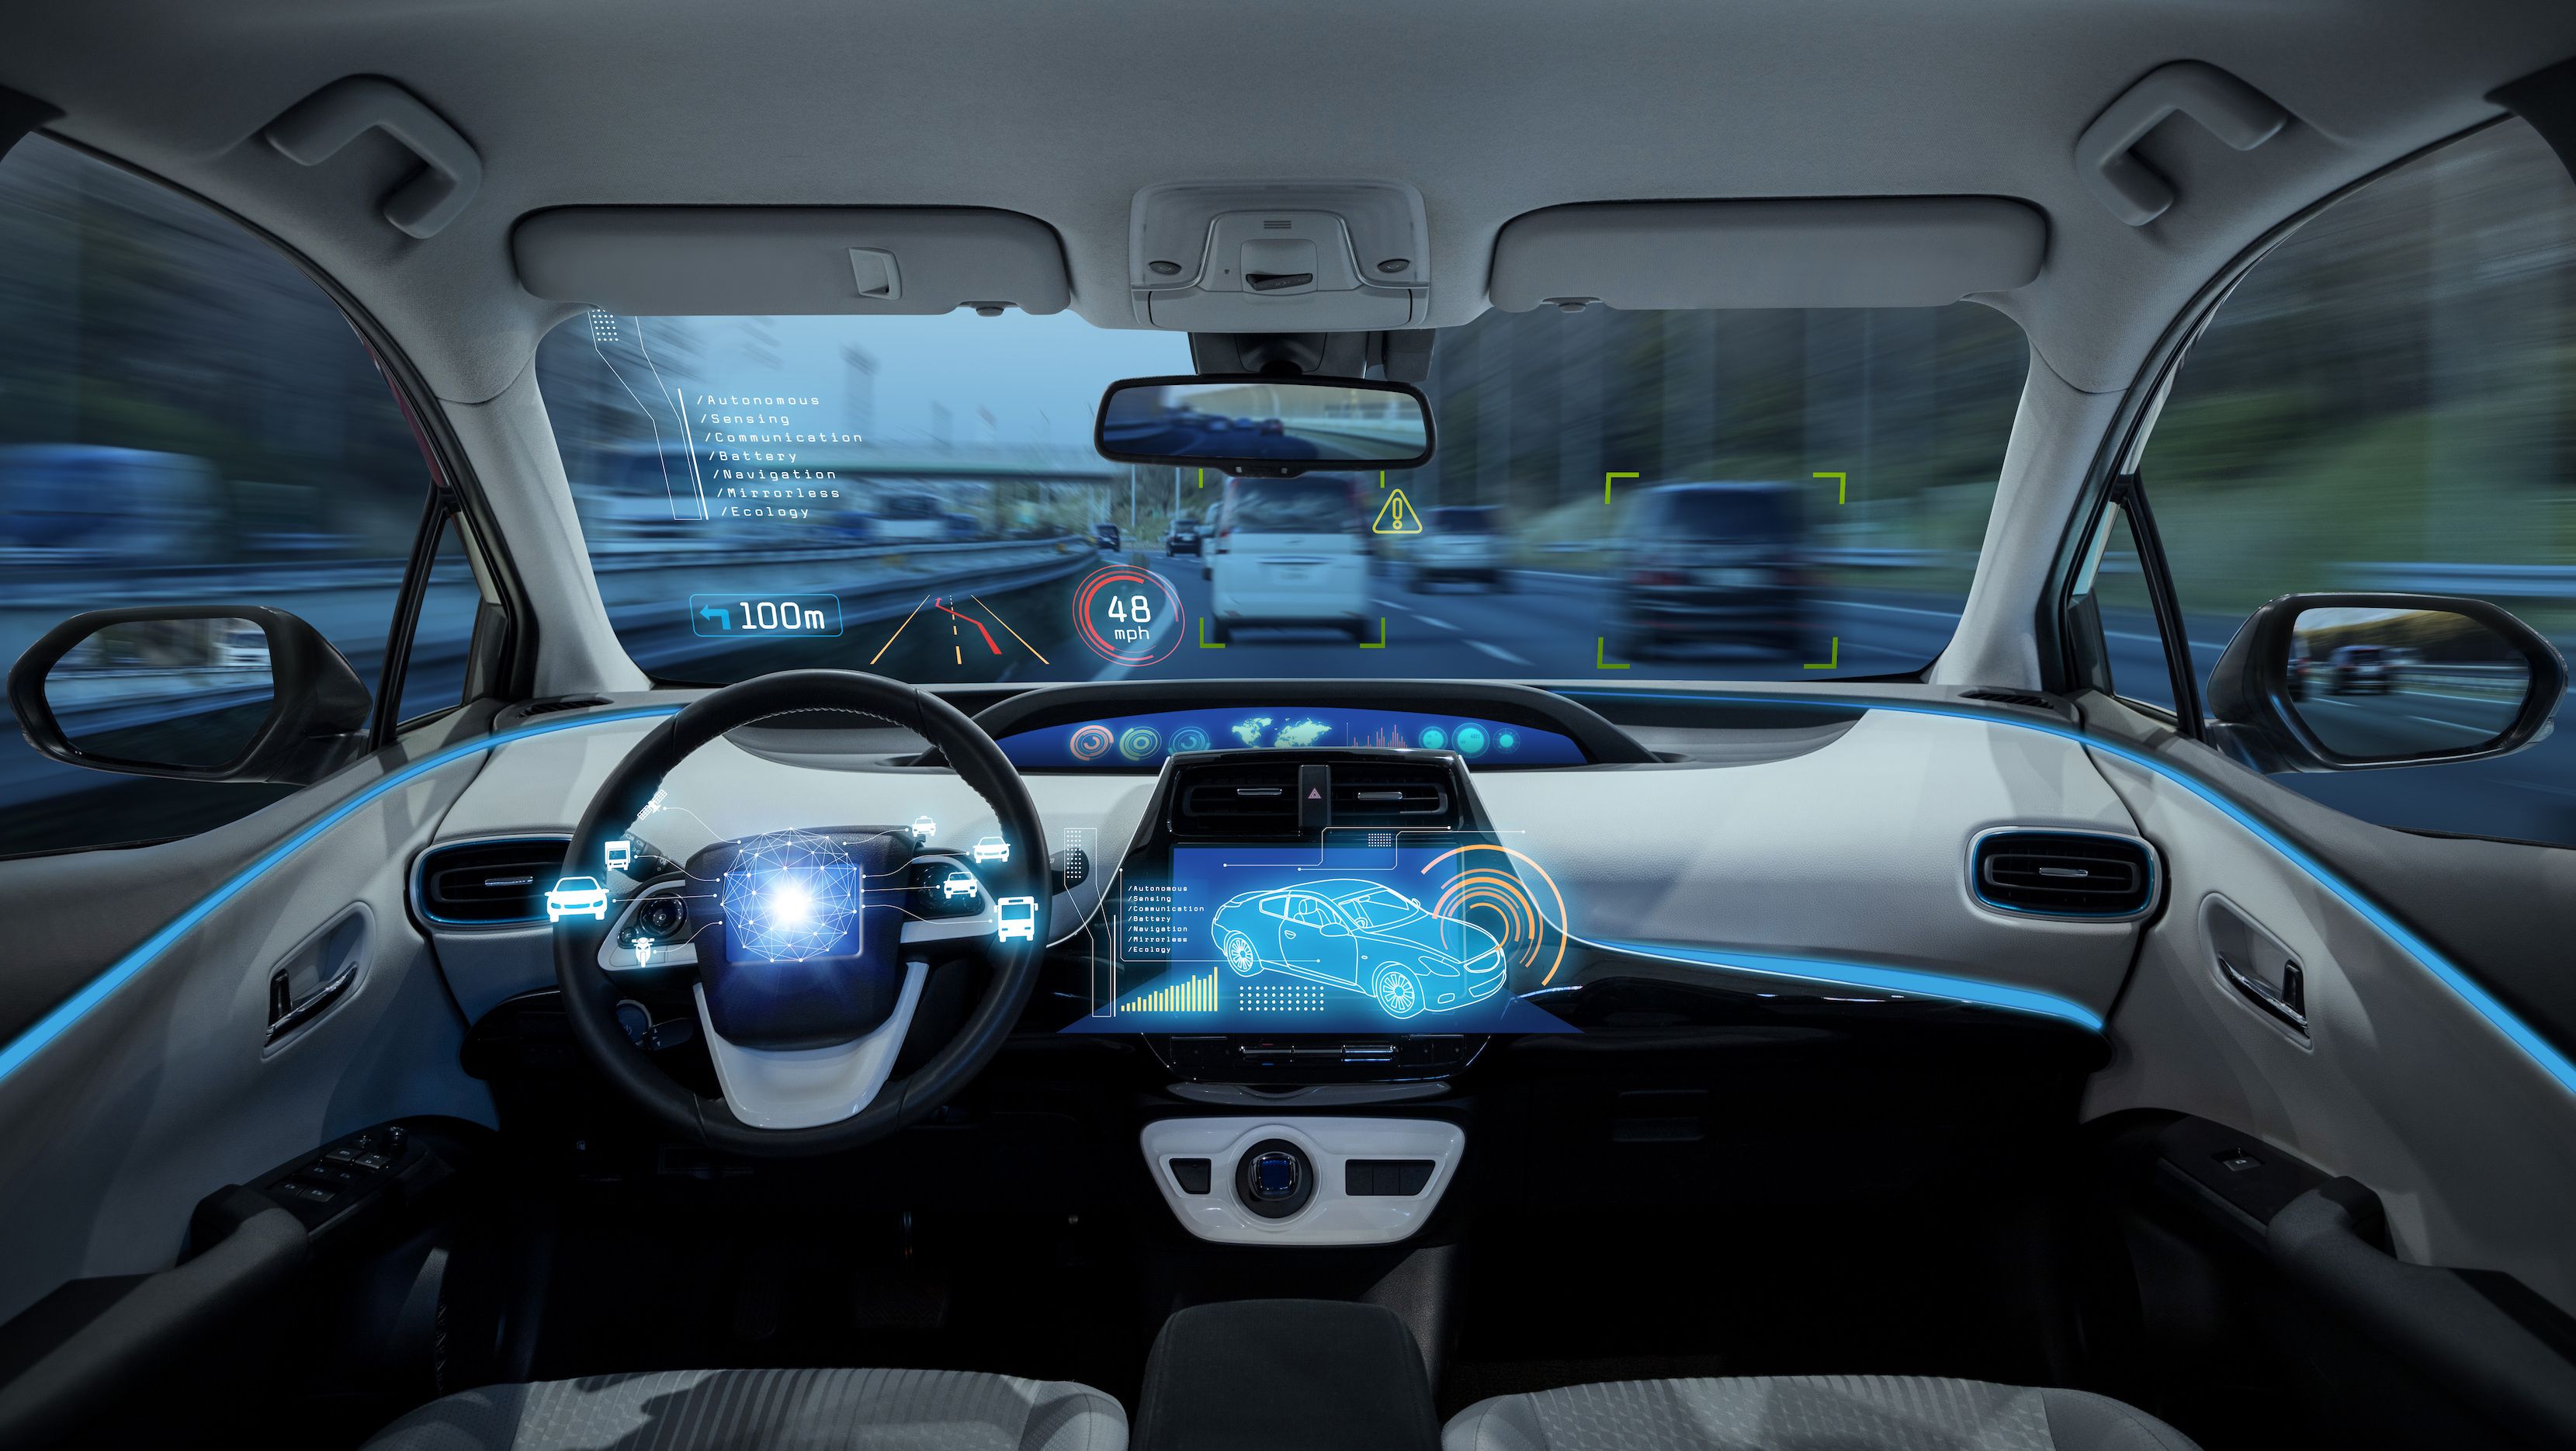 A recent study from MIT highlights a potential new breakthrough in improving the safety of self-driving cars.